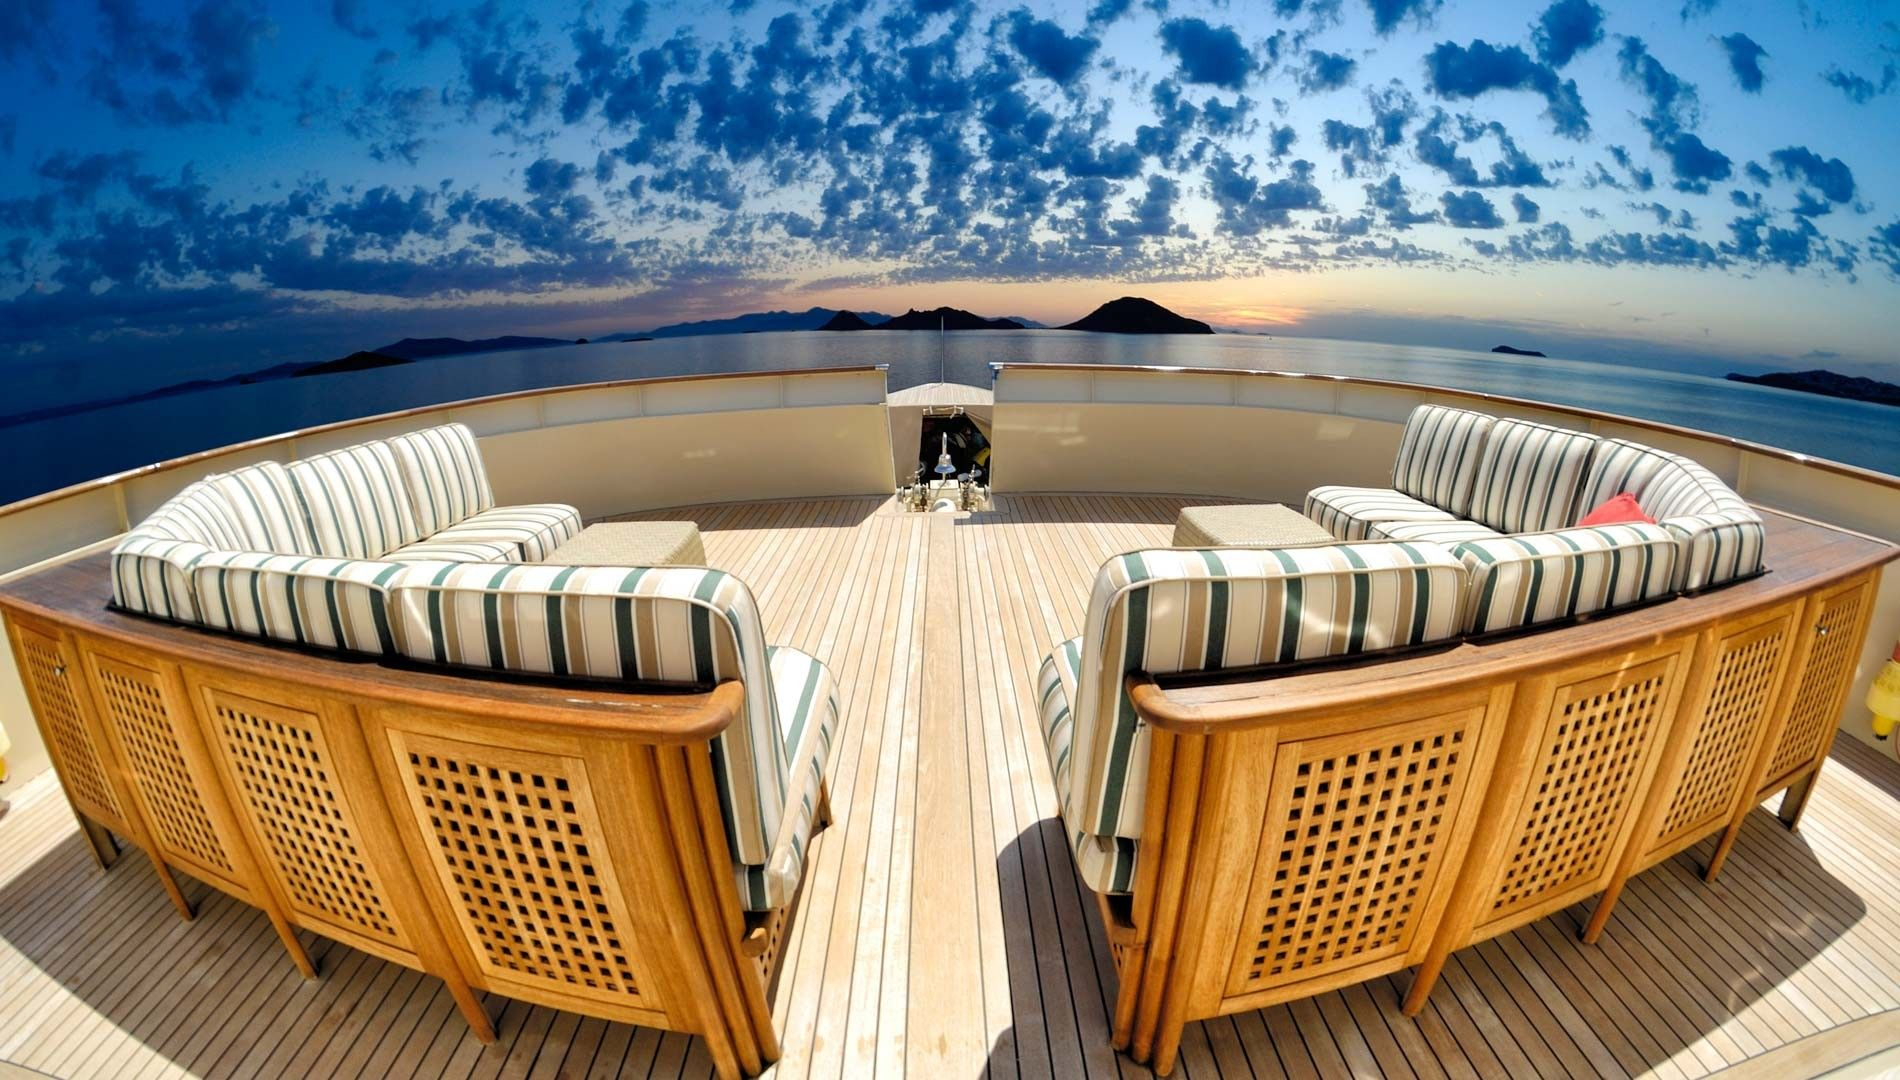 MESERRET Superyacht Luxury Motor Yacht for Sale with